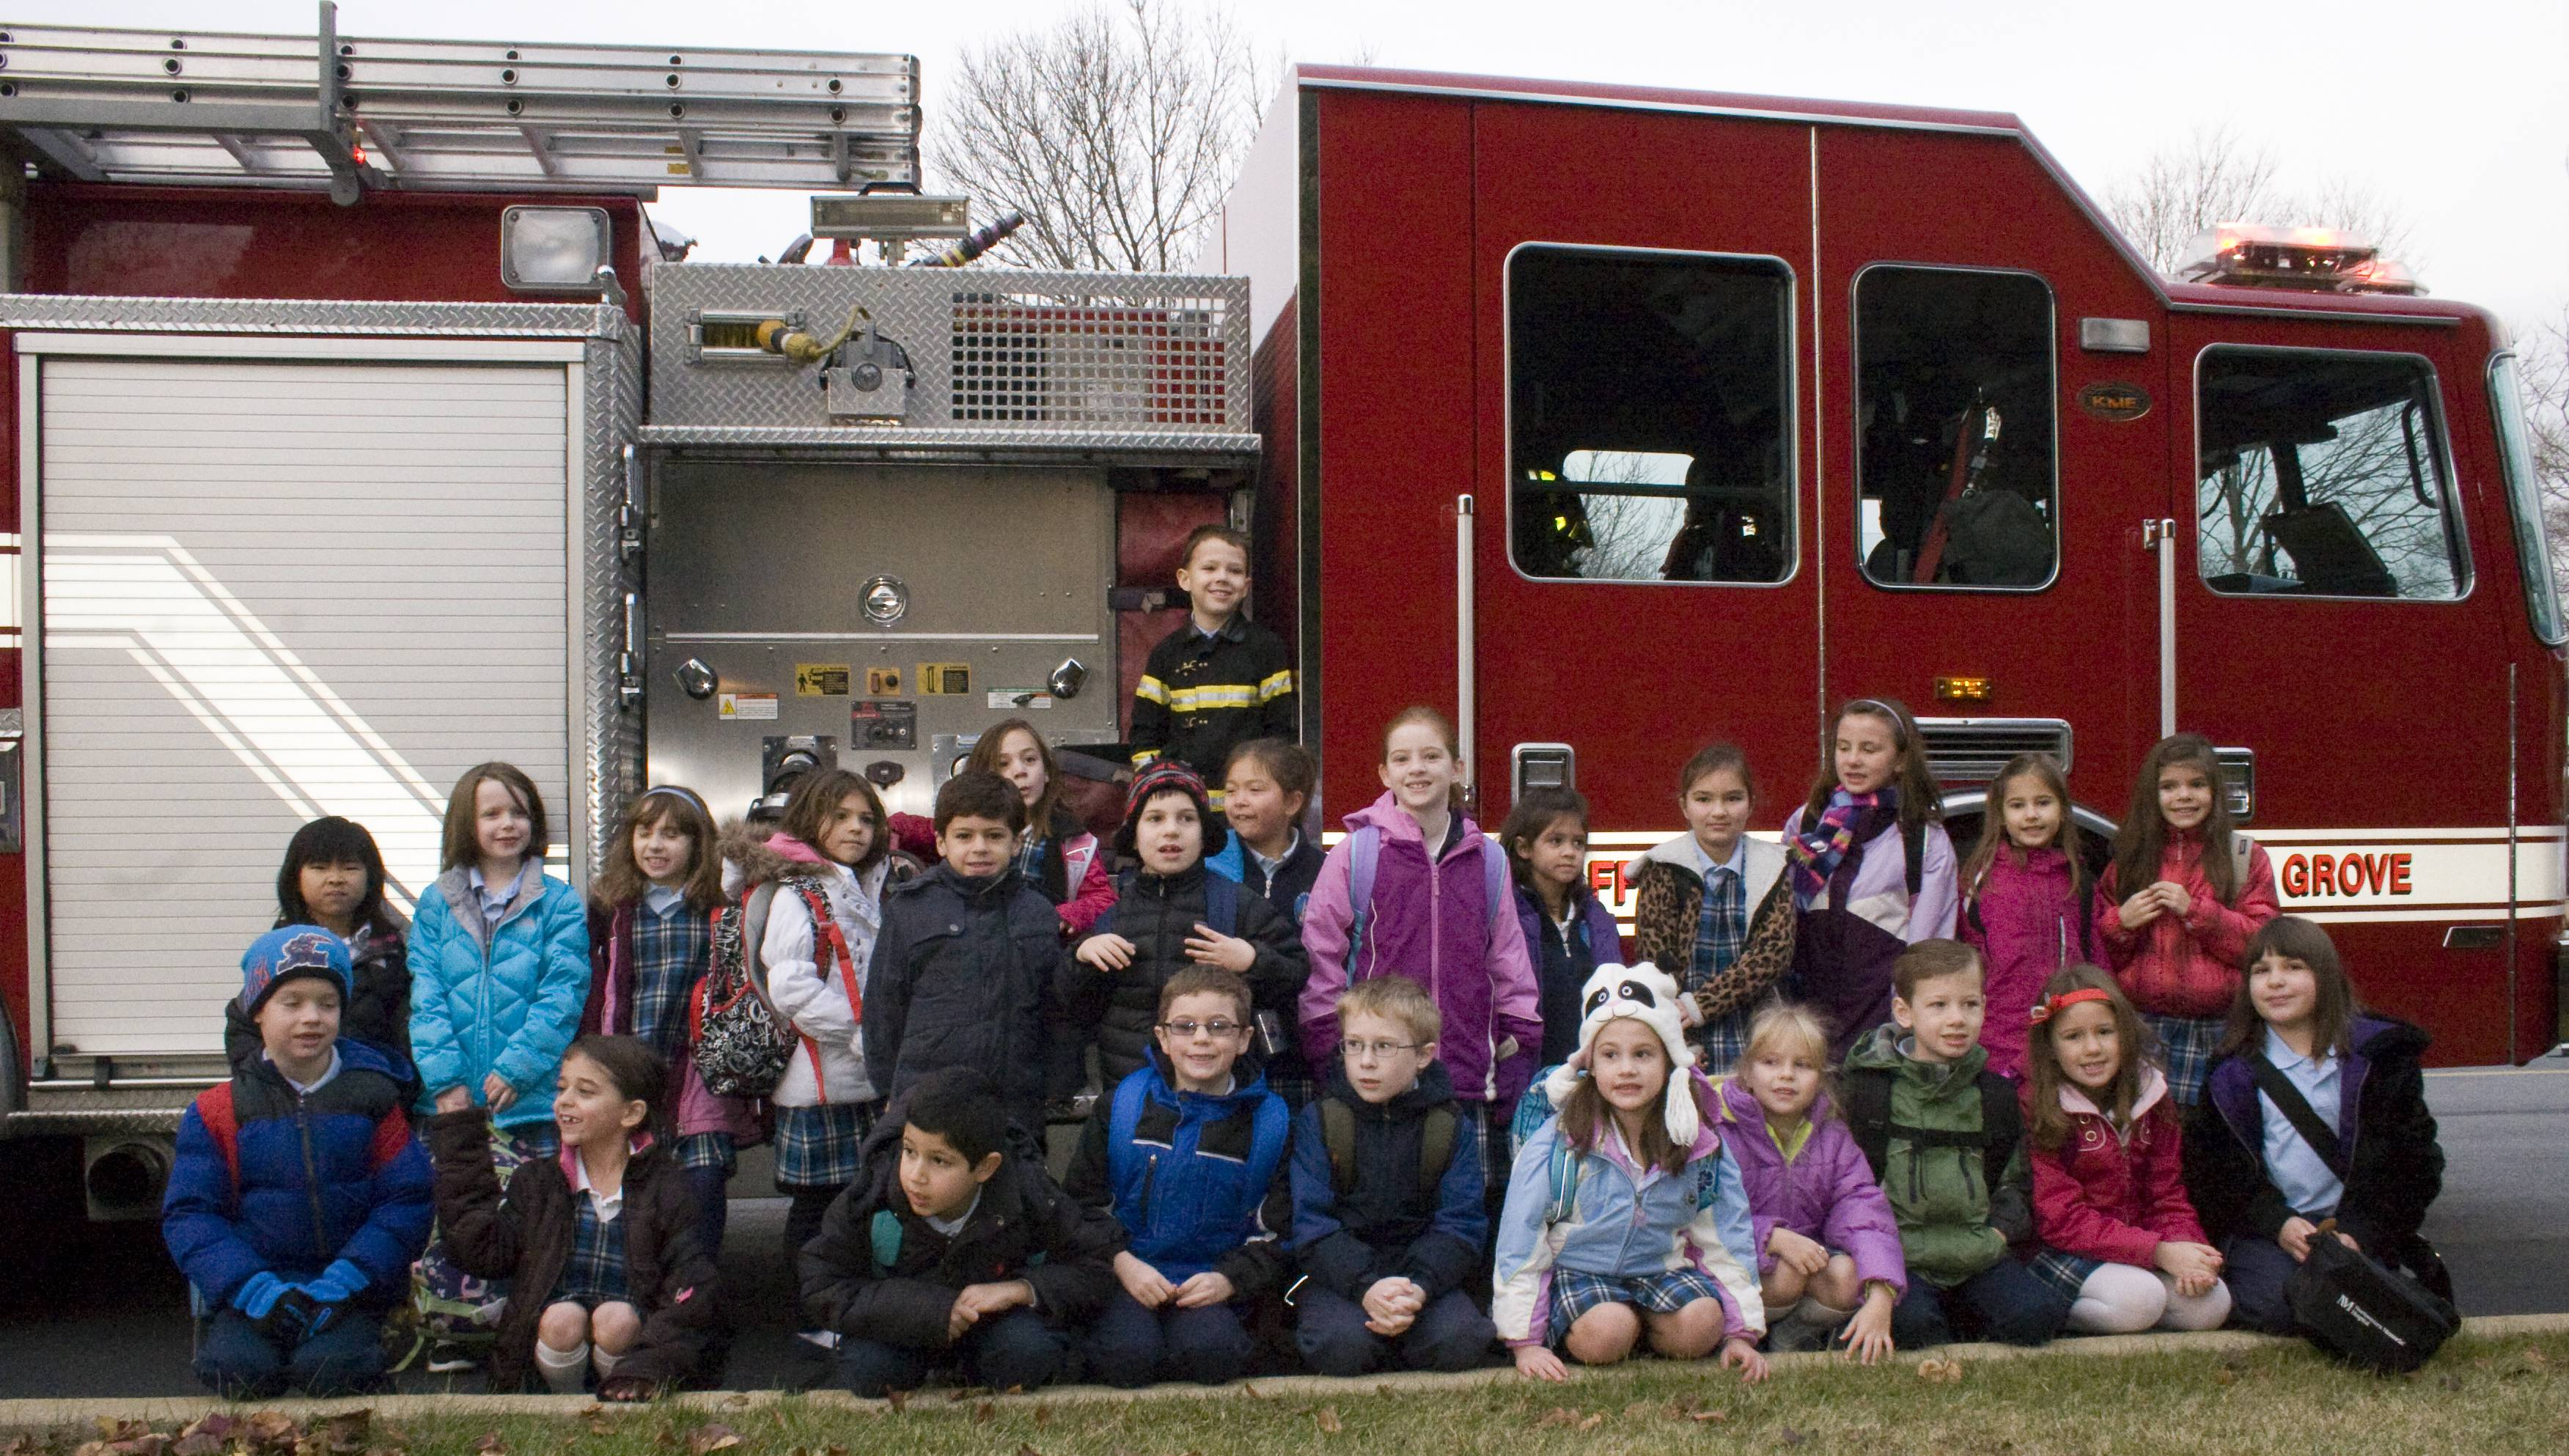 Saint Mary BG second grader Kiernan Deer with his class after their ride on a Buffalo Grove fire truck